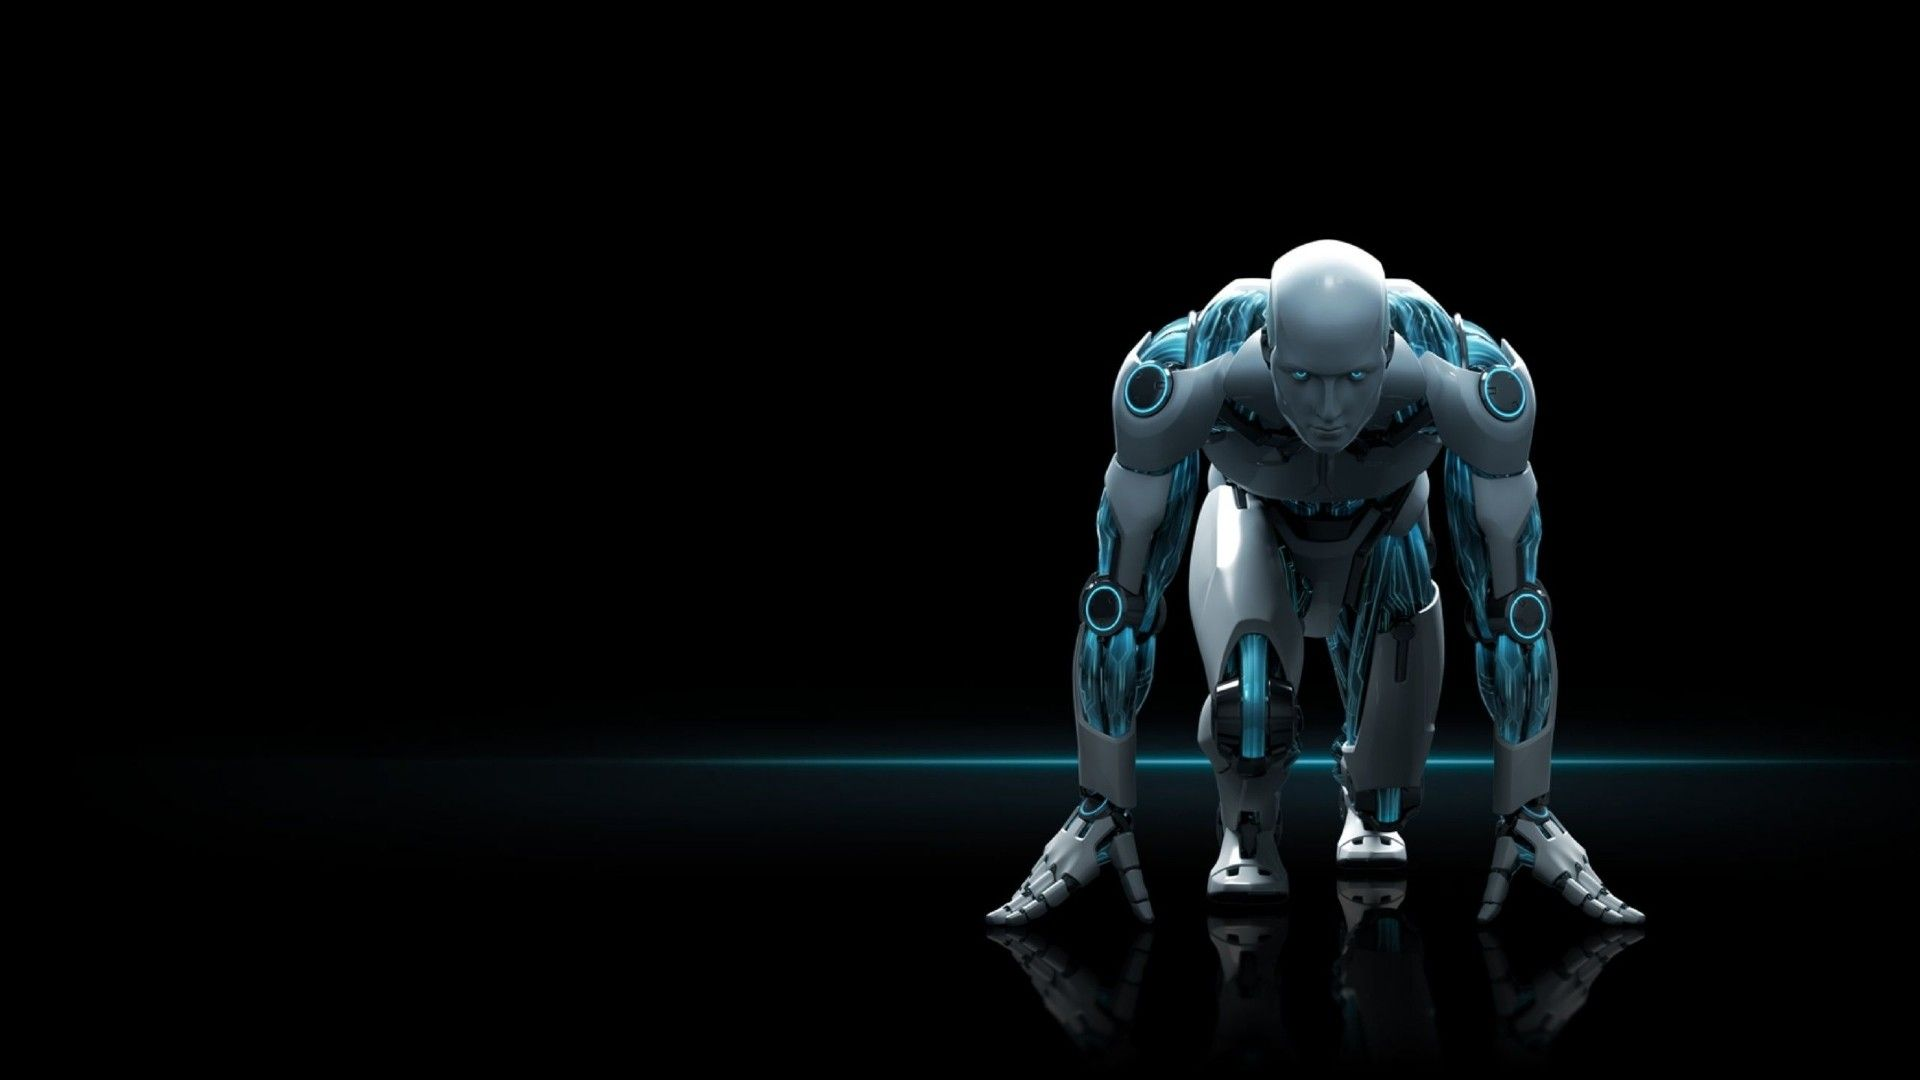 fitness-eset-security-dark-hd-computers-106799 | Robots, Cyborgs and Androids | Pinterest ...